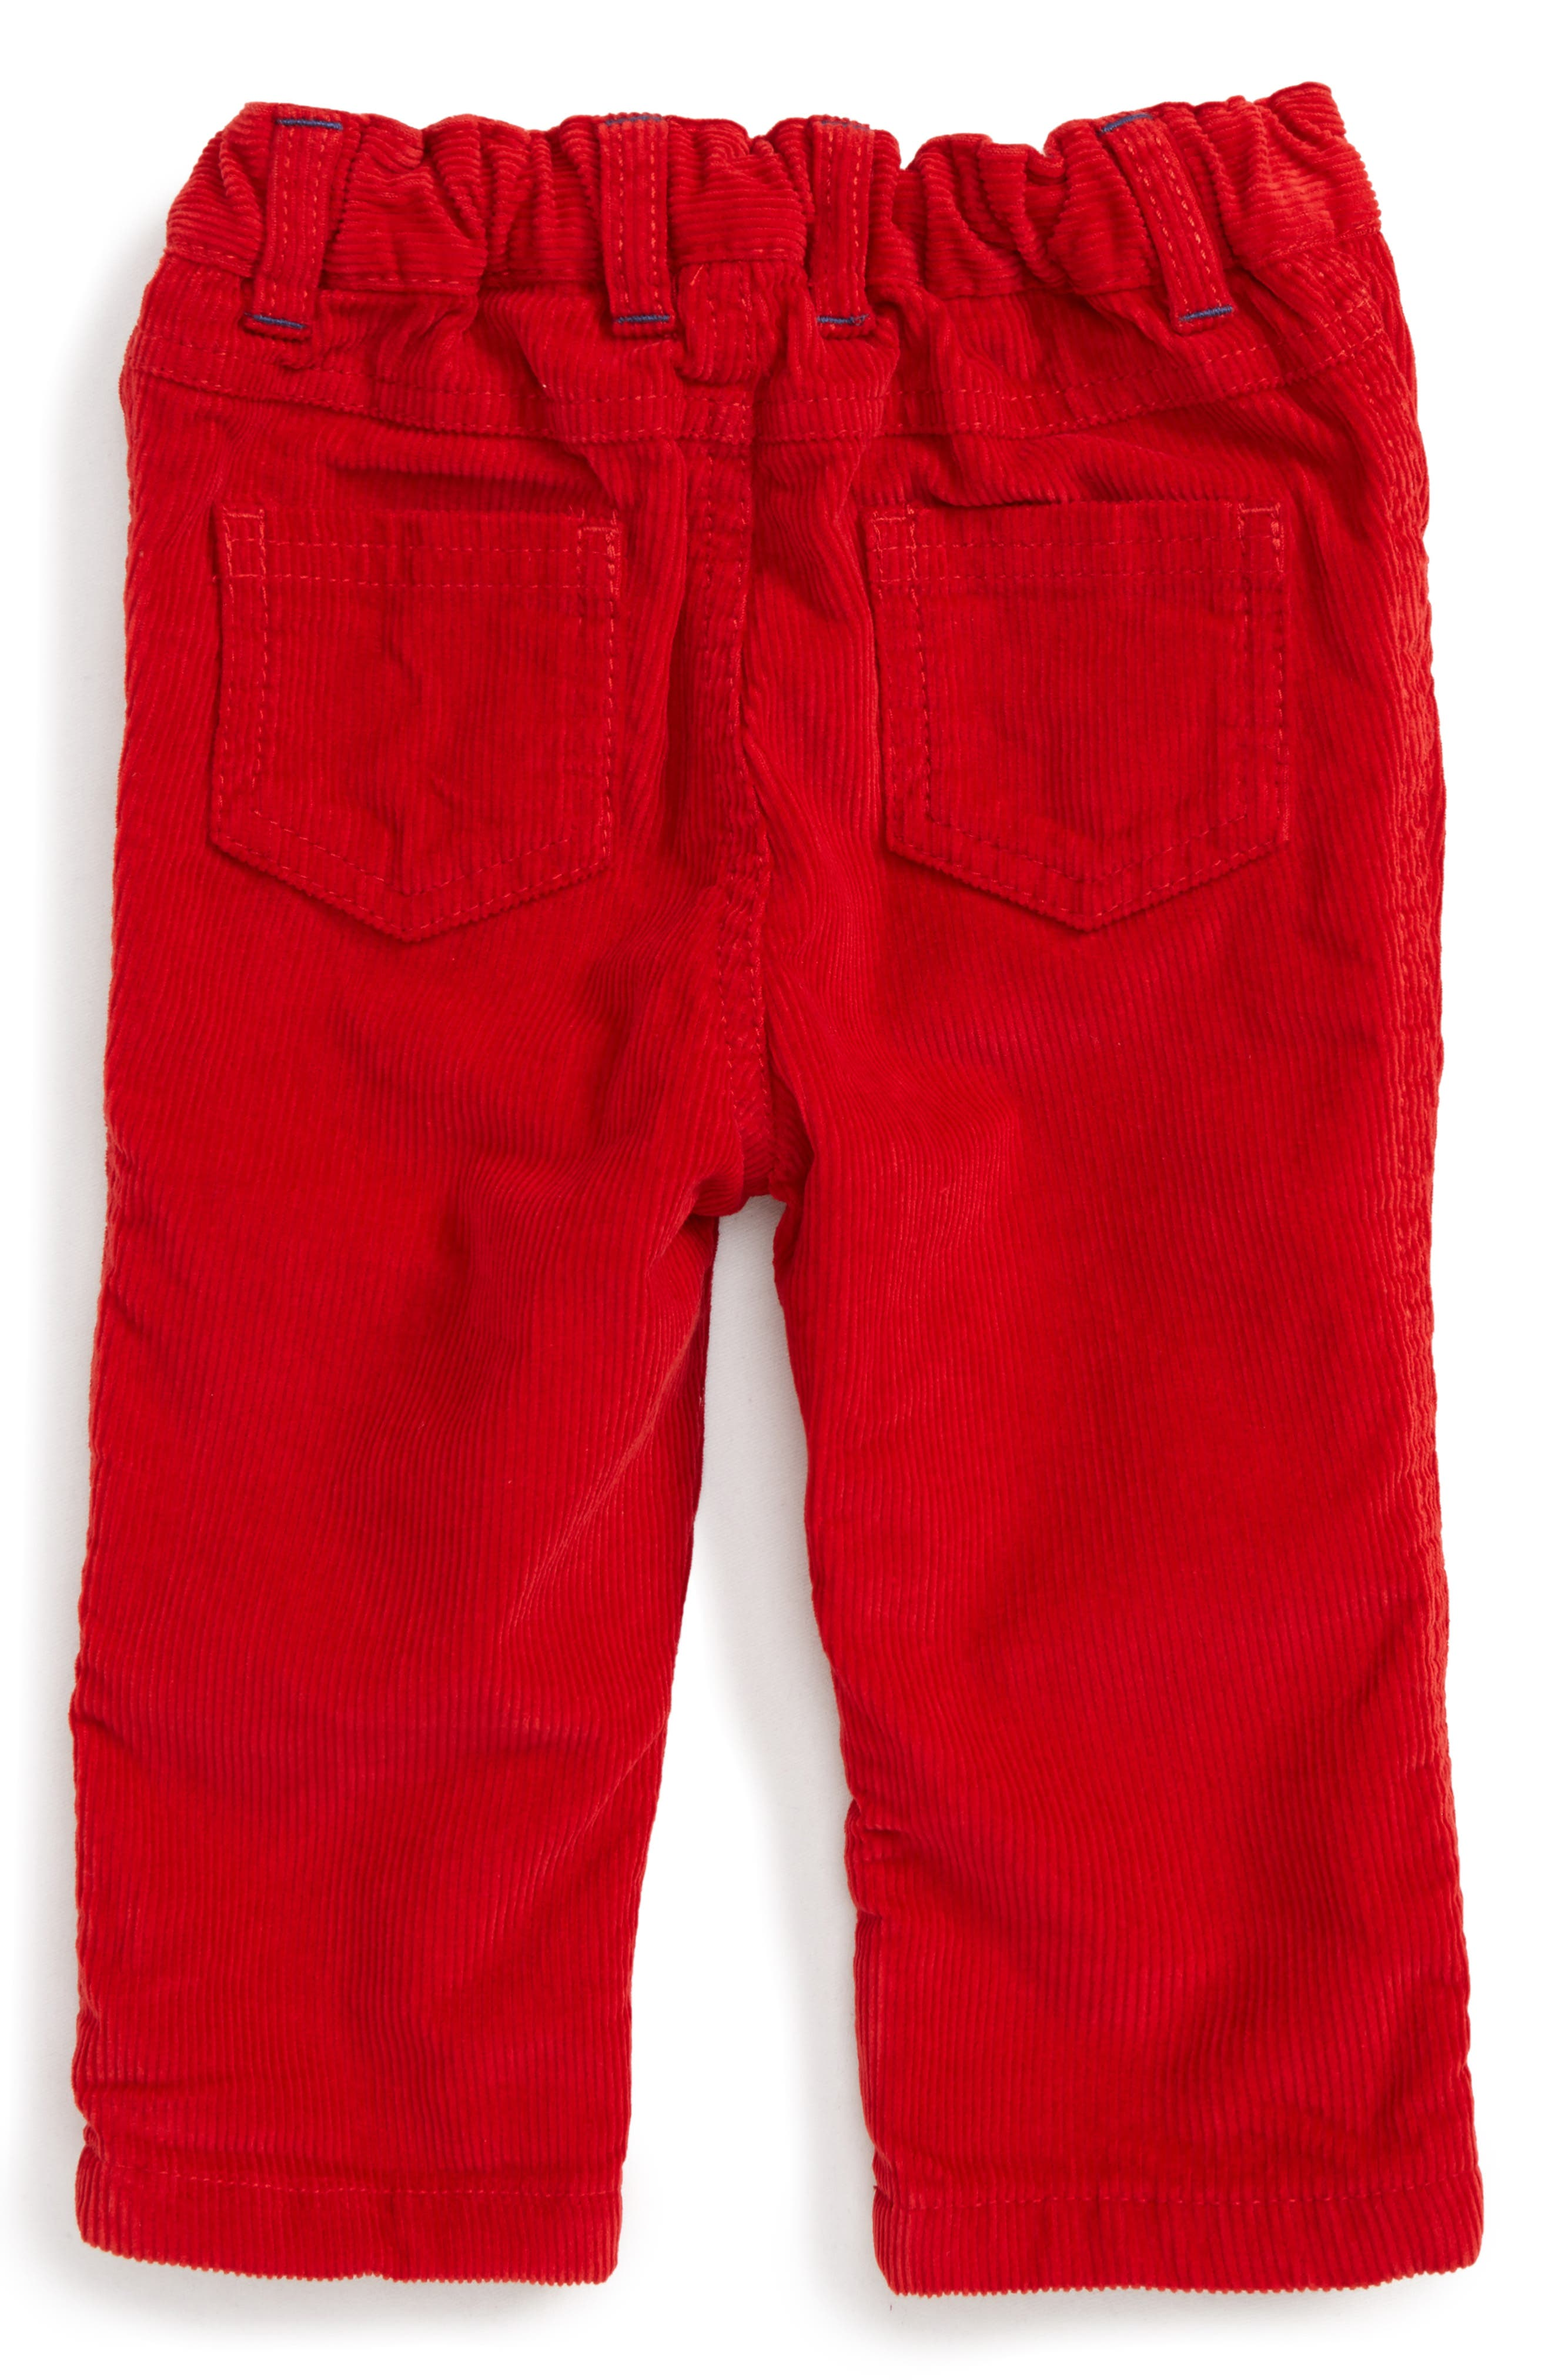 Alternate Image 2  - Mini Boden Lined Corduroy Pants (Baby Boys & Toddler Boys)